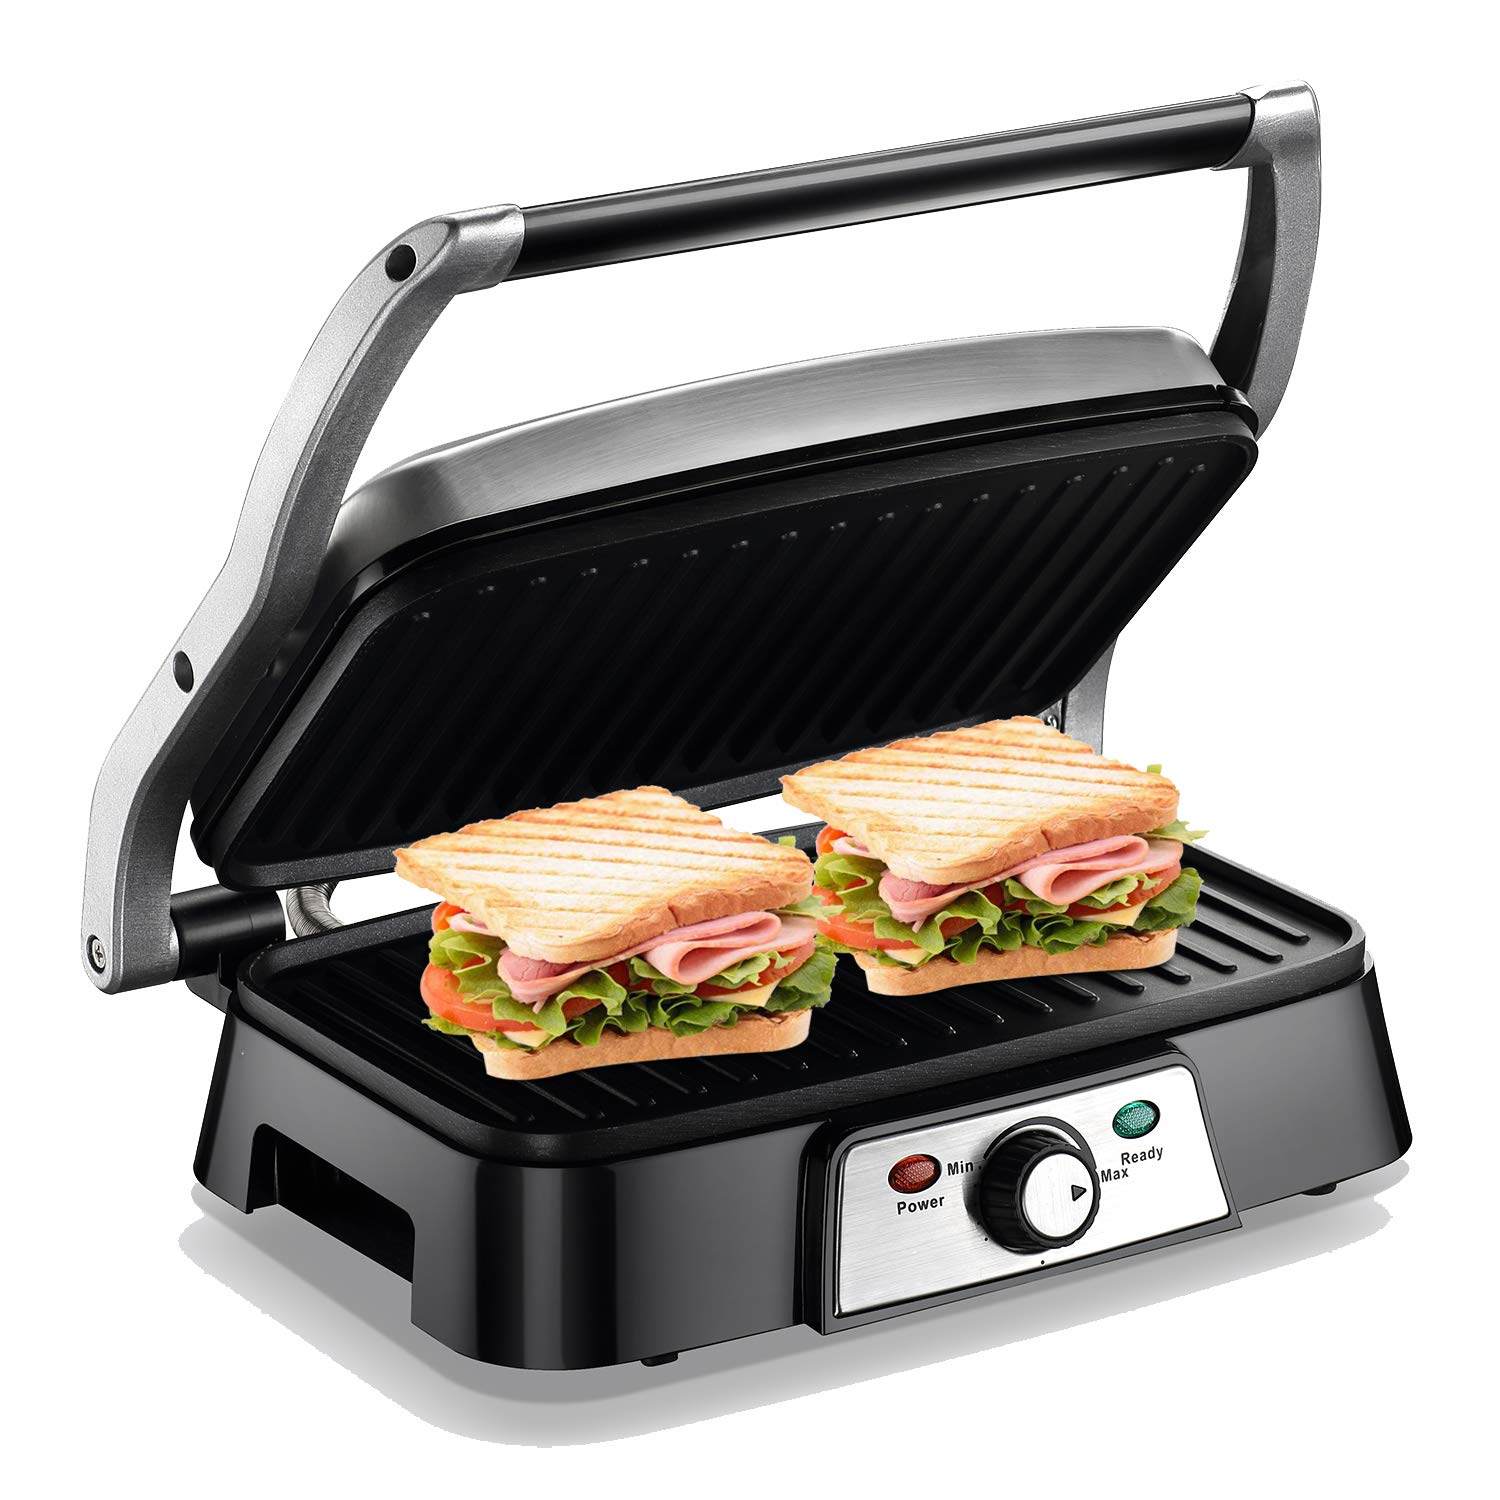 Panini Maker 4 Slice Panini Press Grill, Non-stick Sandwich Maker with Removable Drip Tray and Temperature Control 1200W, Opens 180 Degrees for Sandwich, Steaks, Grilled fish by Homeleader